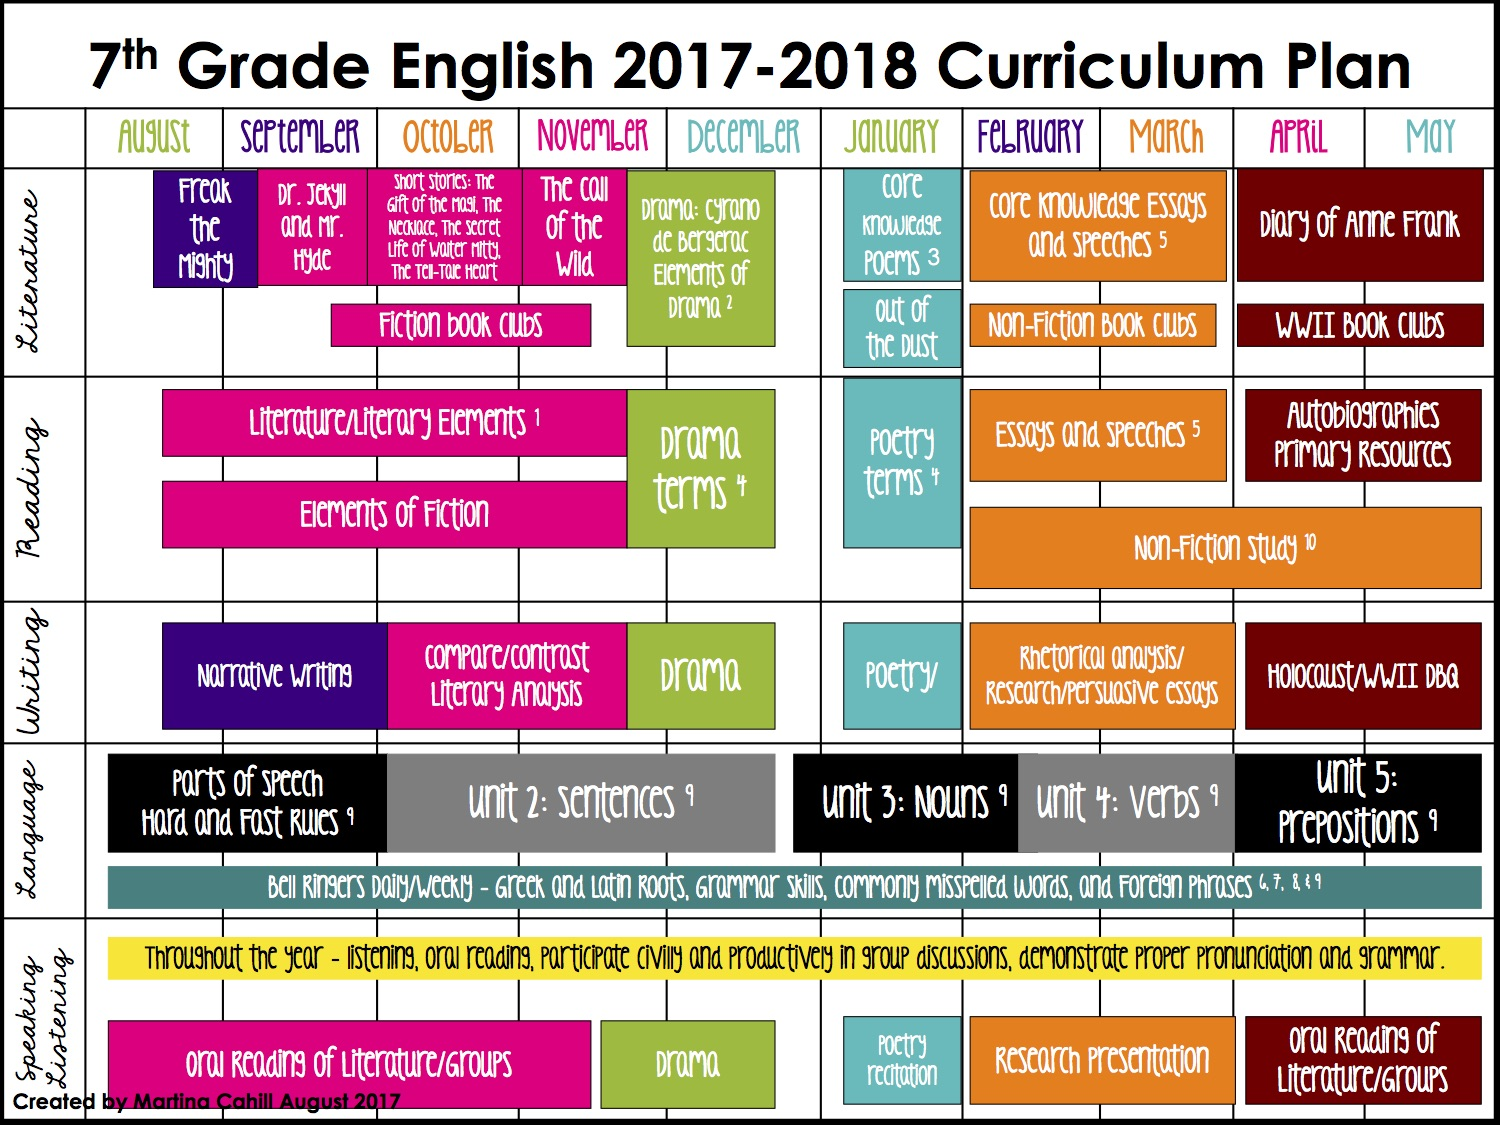 Middle School ELA Schedule (Daily, Weekly, Monthly, Year